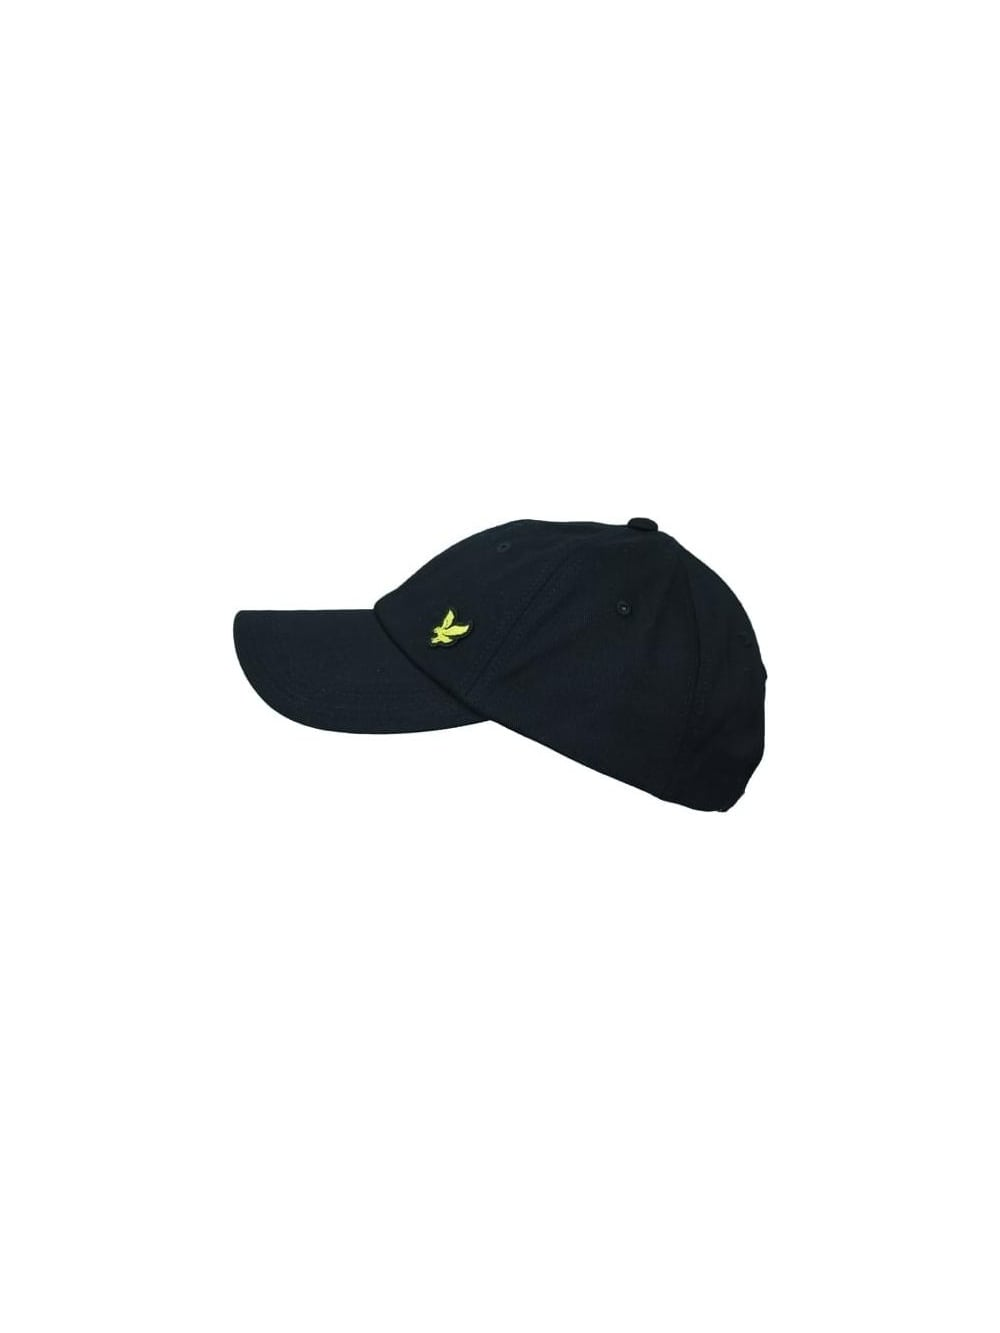 Lyle and Scott Baseball Cap in Black - Northern Threads bc4a9891e2f